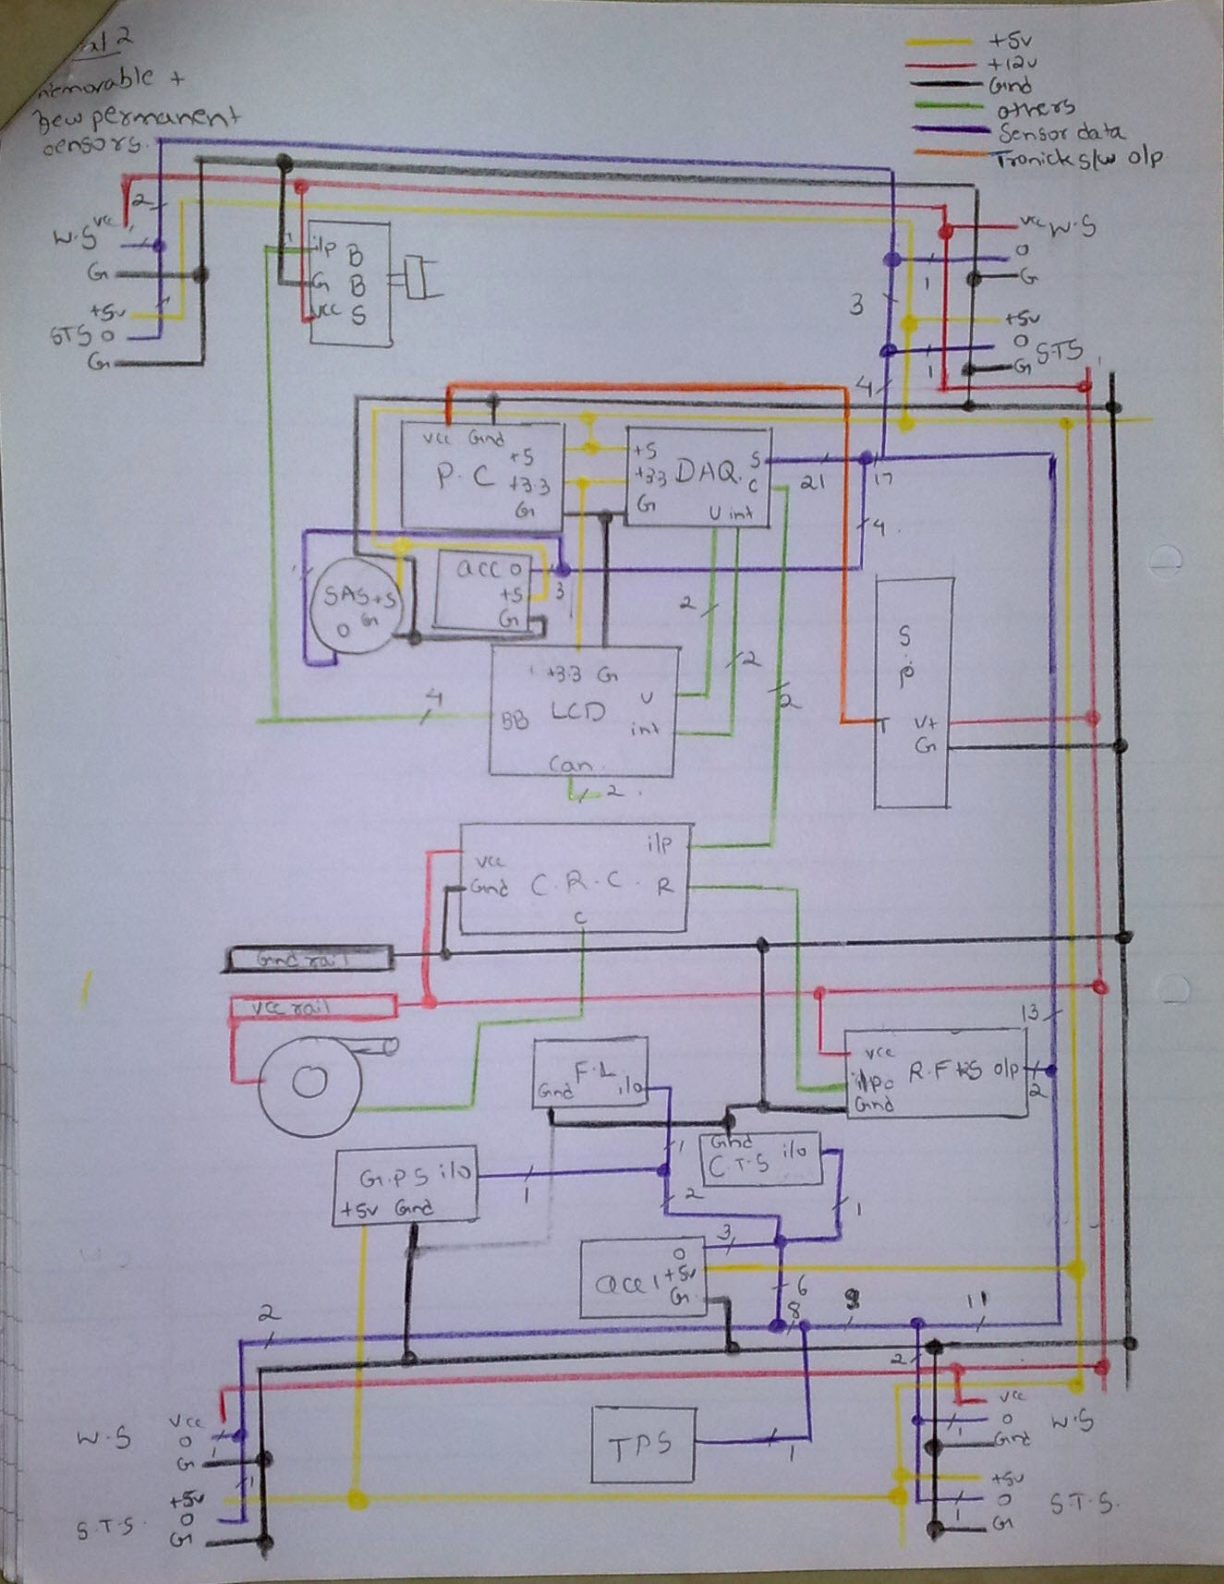 Drag Race Car Wiring Diagram Marine Battery Disconnect Switch Wiring Diagram  and forum Discussion Of Drag